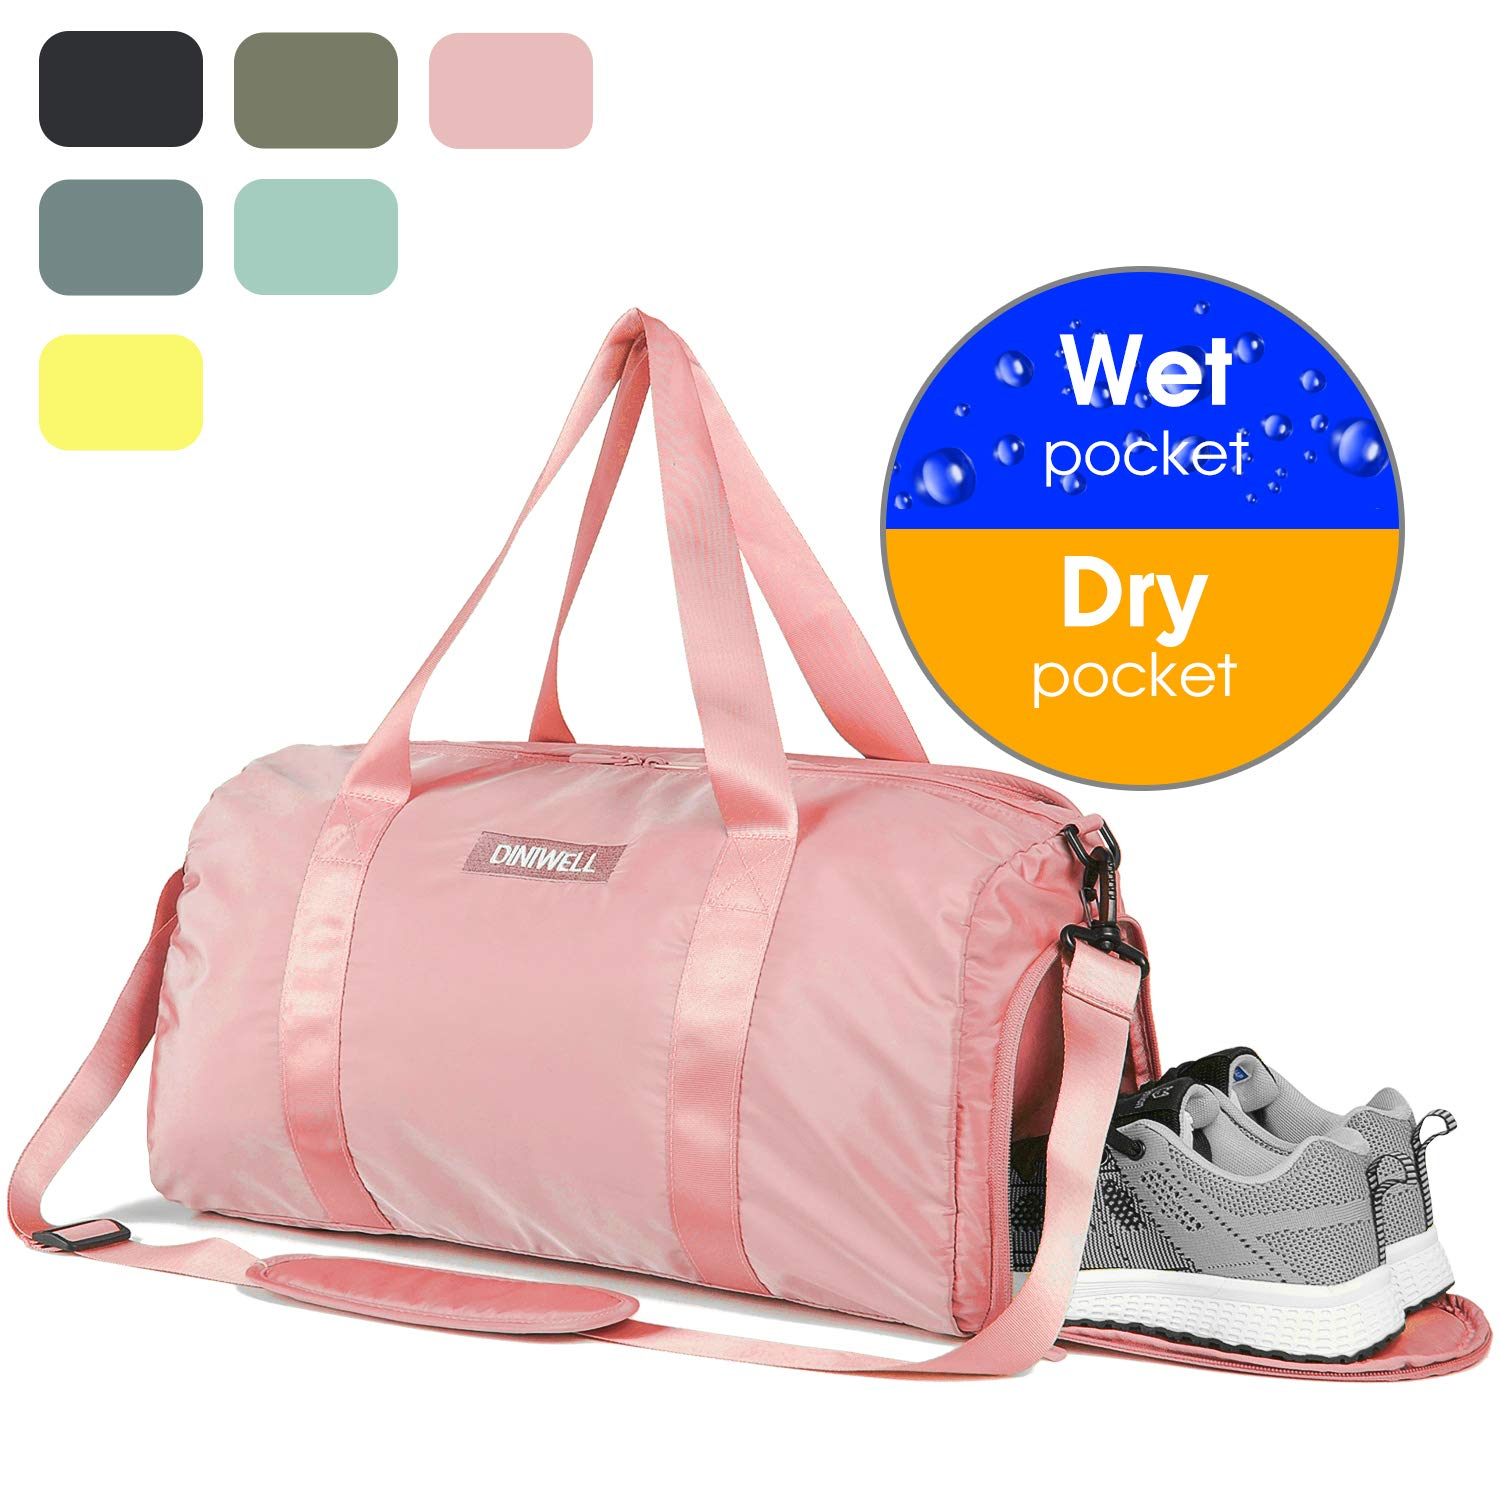 aef941b7a2 Amazon.com  Duffle Bag Gym Tote Swim Bag with Wet Pocket and Shoes  Compartment for Sports Travel Carry-on Luggage (Pink)  Sports   Outdoors